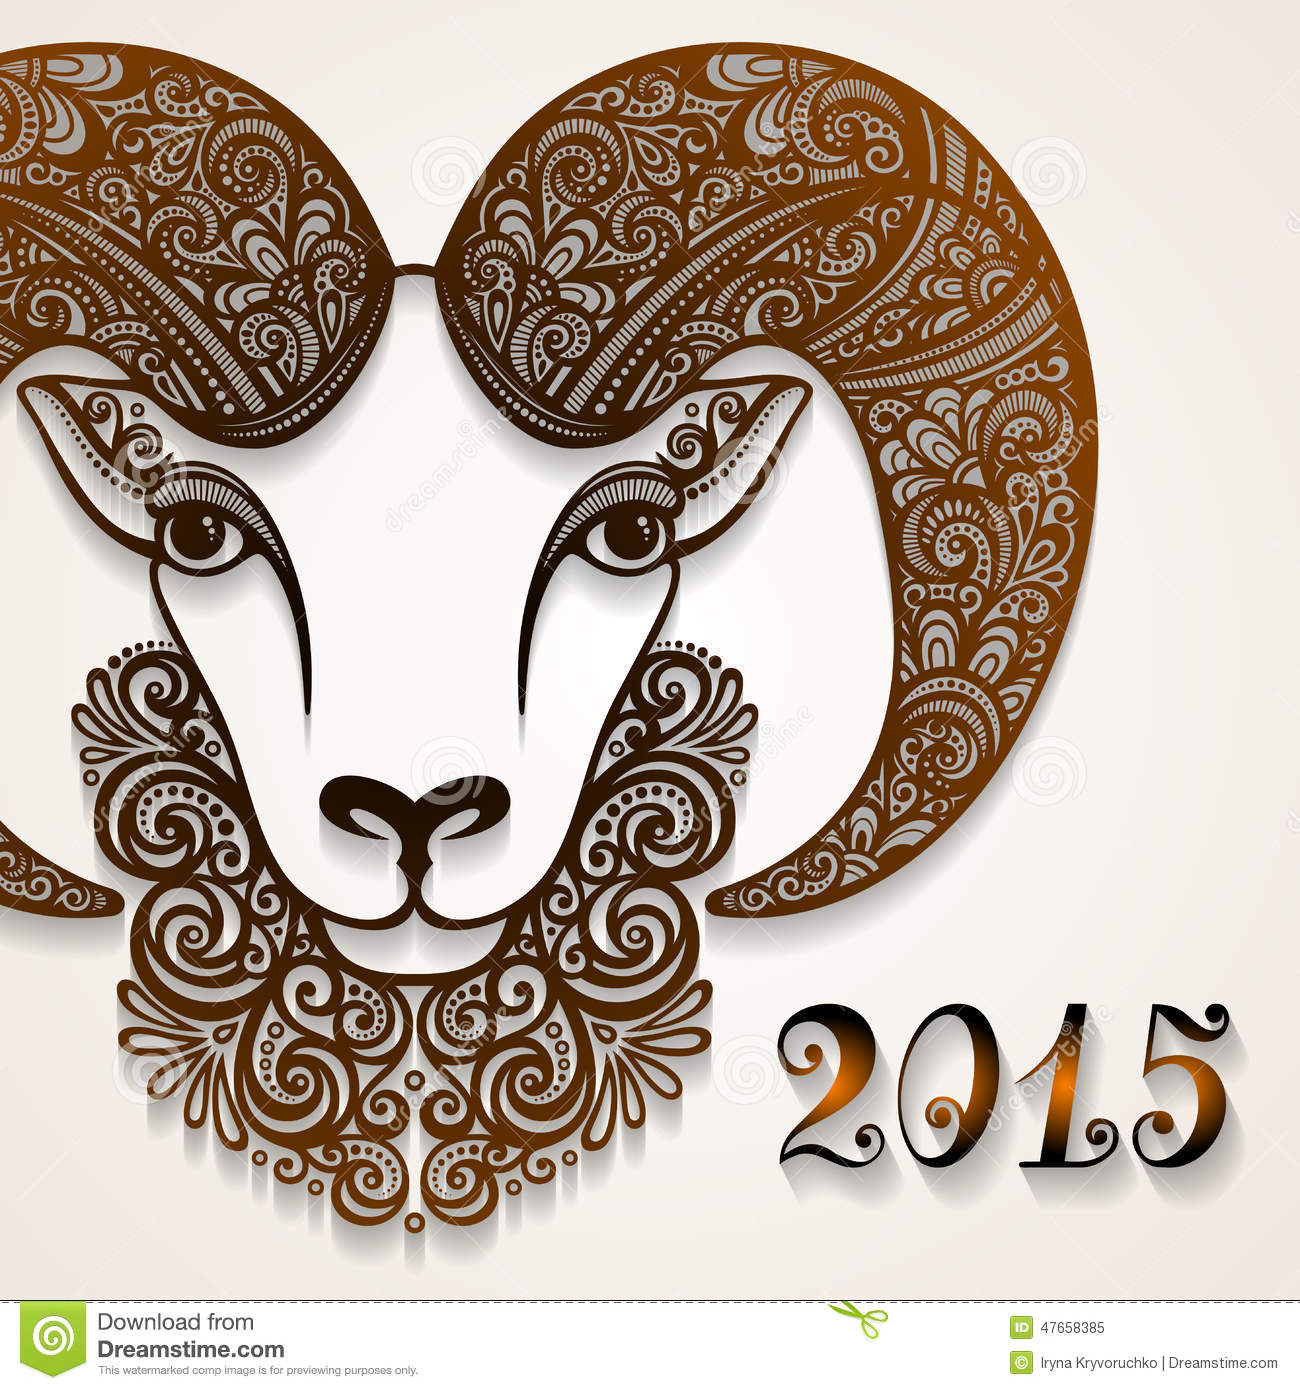 Download Vector Decorative Sheep With Patterned Horns Stock Vector - Illustration of head, design: 47658385